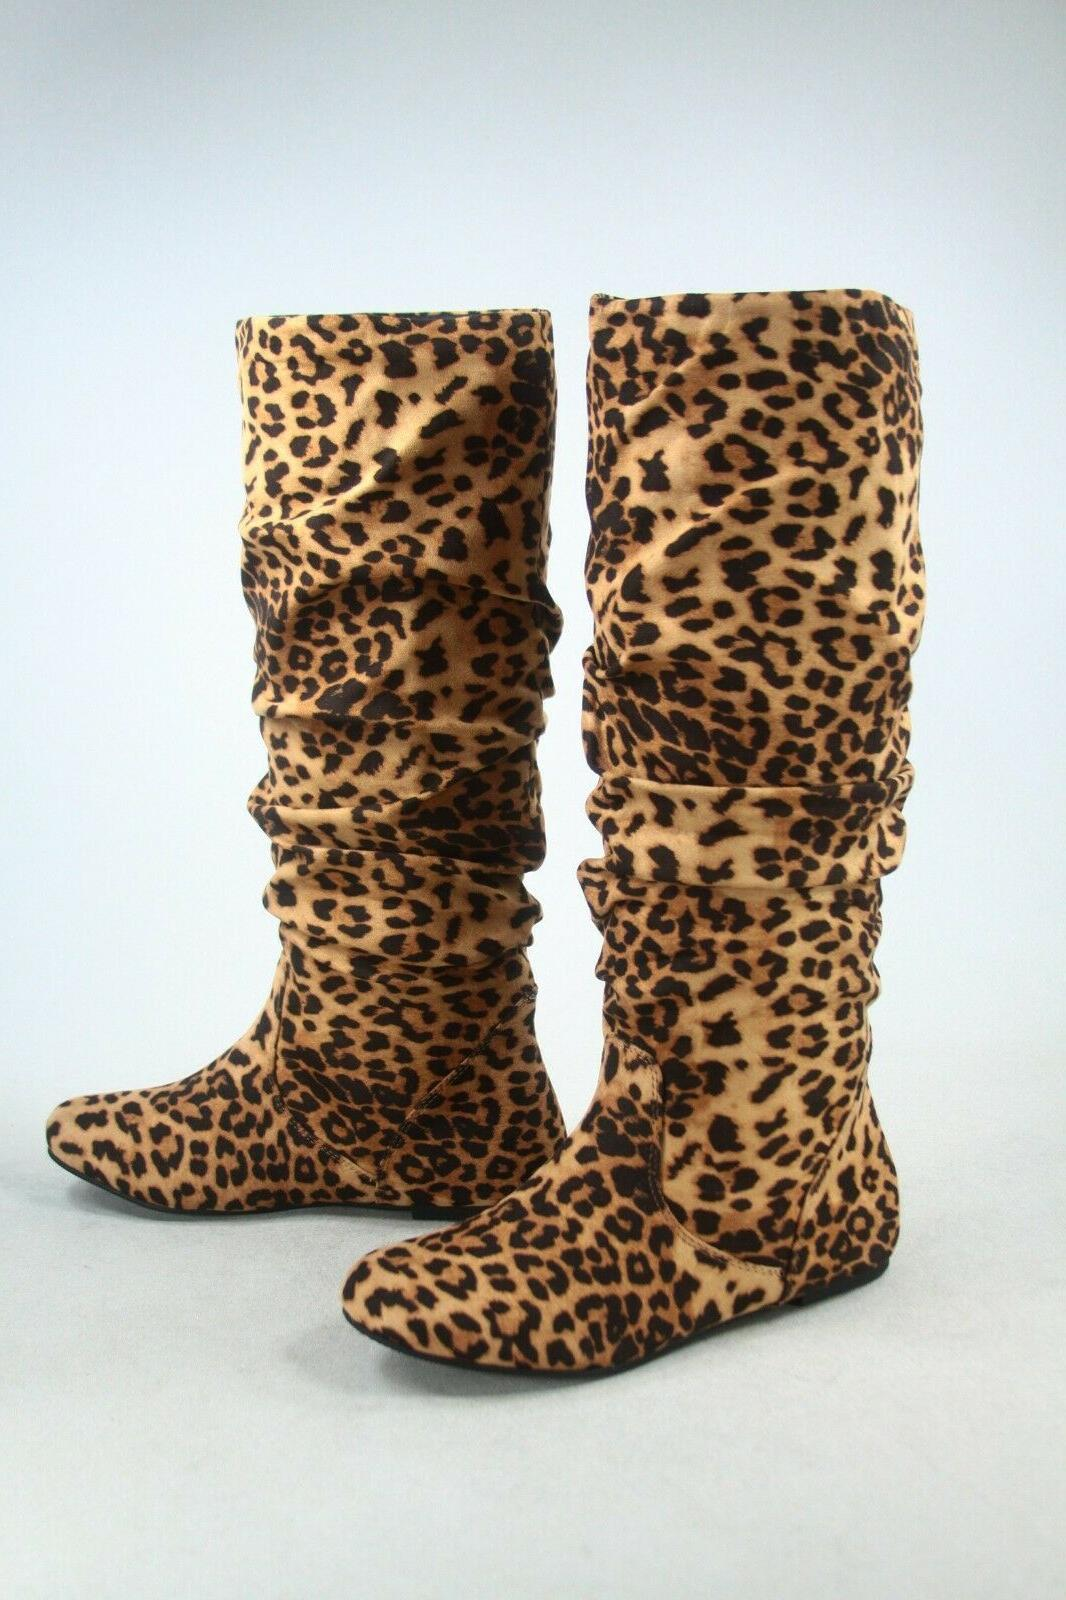 NEW Women's Leather Knee High Size 6 -